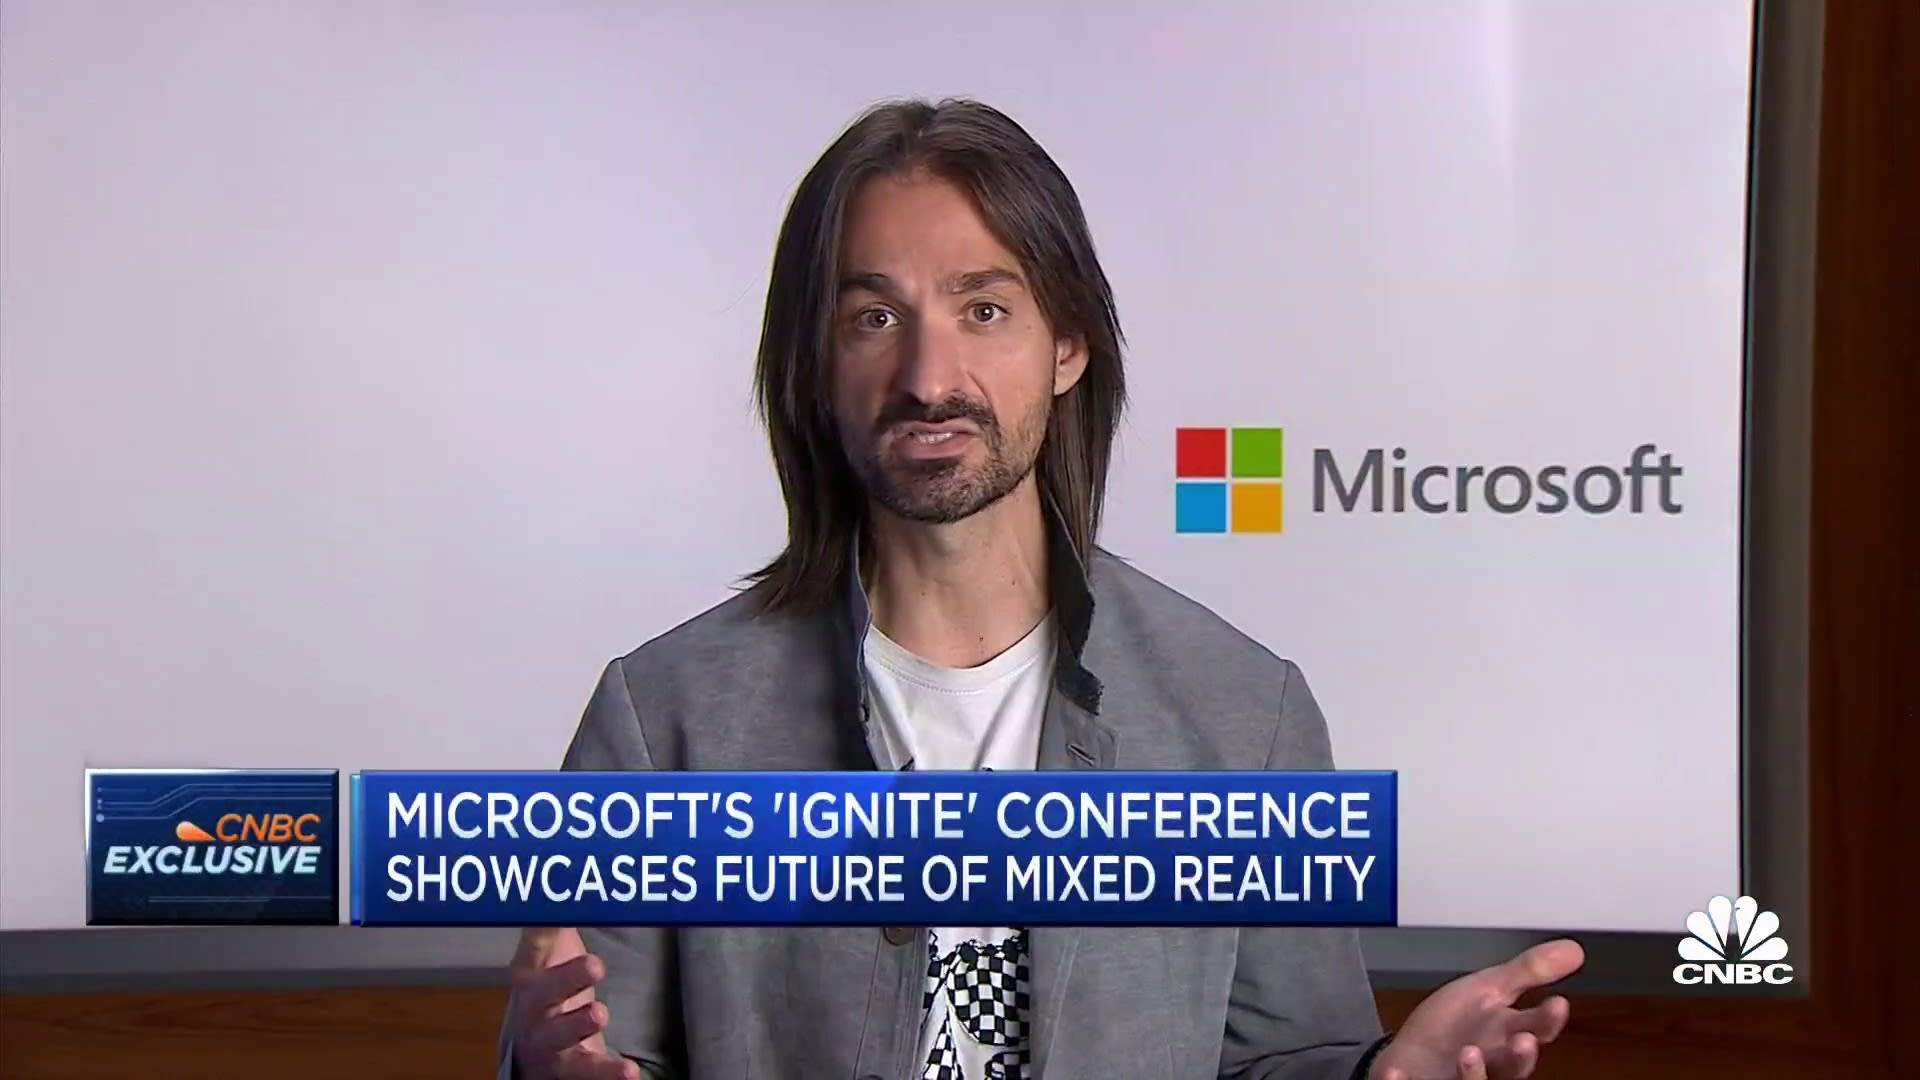 Microsoft's Alex Kipman on the future of mixed reality